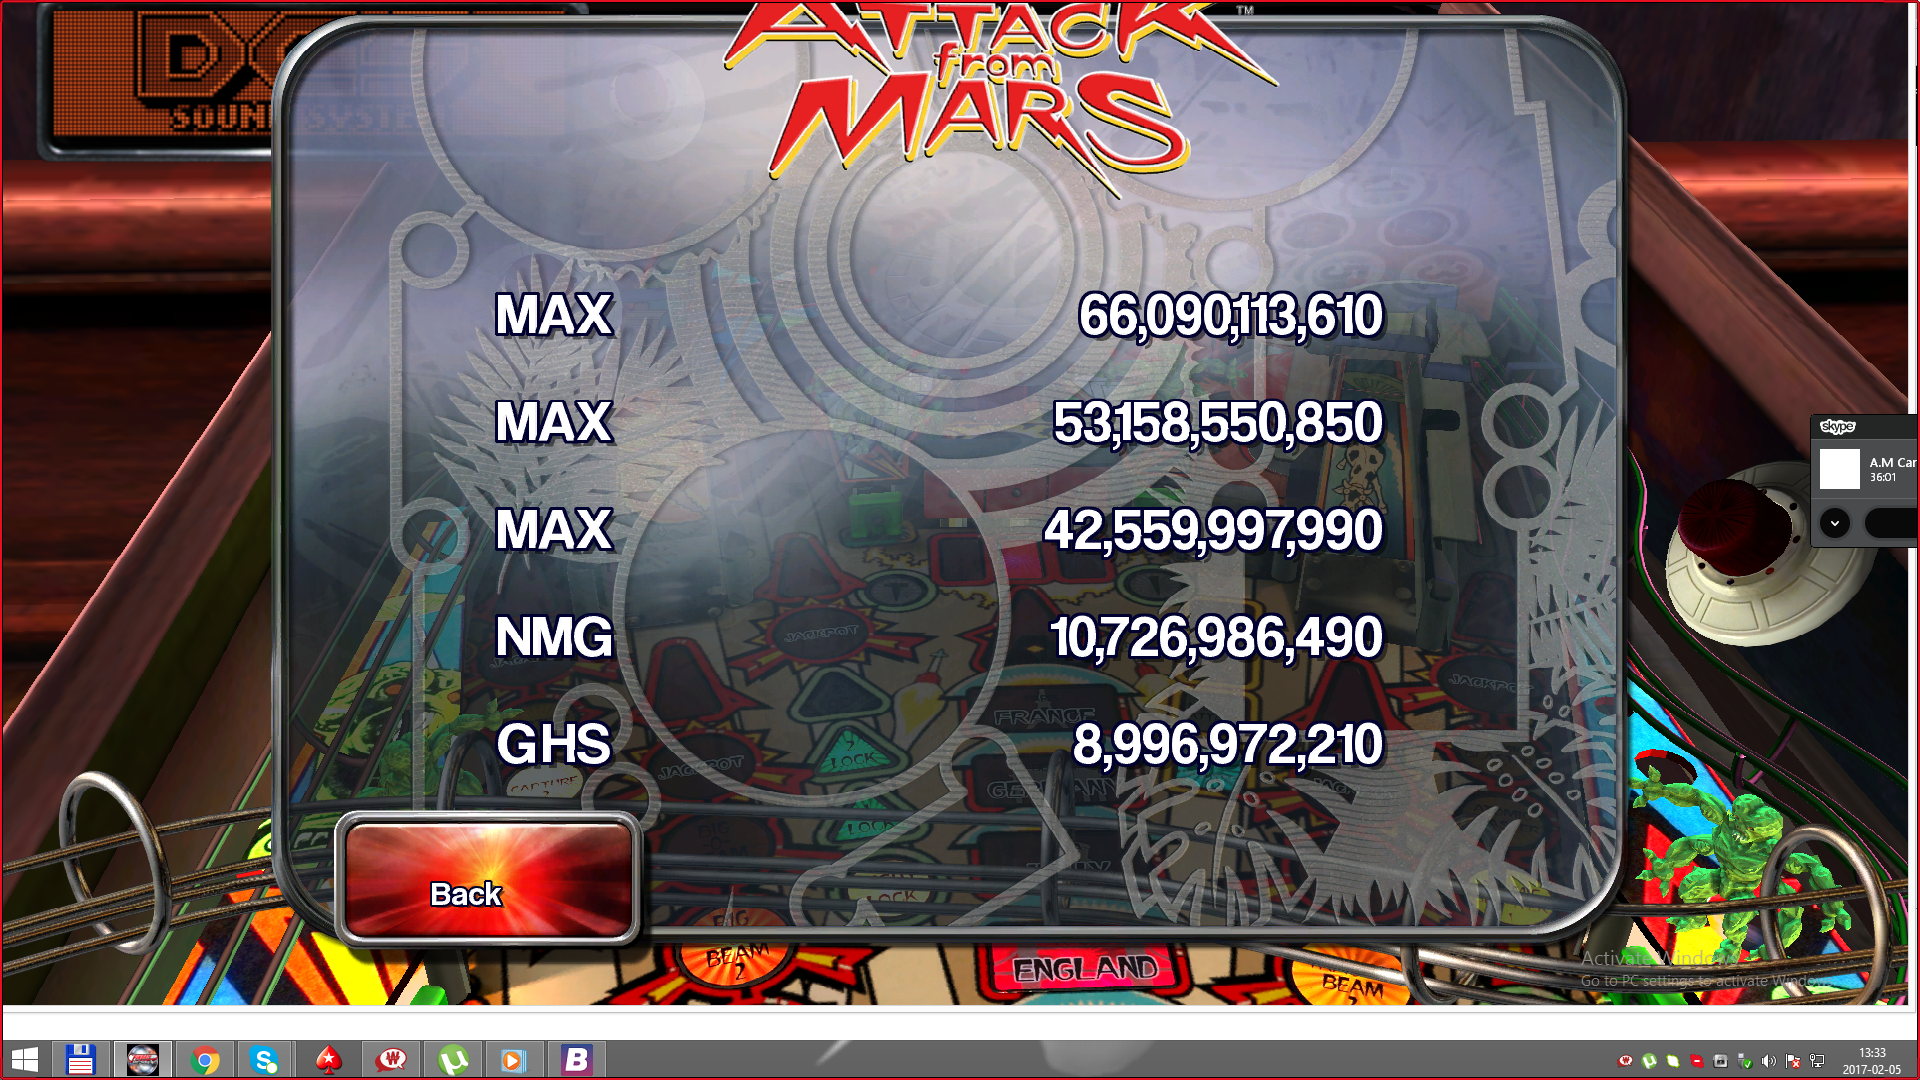 Pinball Arcade: Attack From Mars 66,090,113,610 points